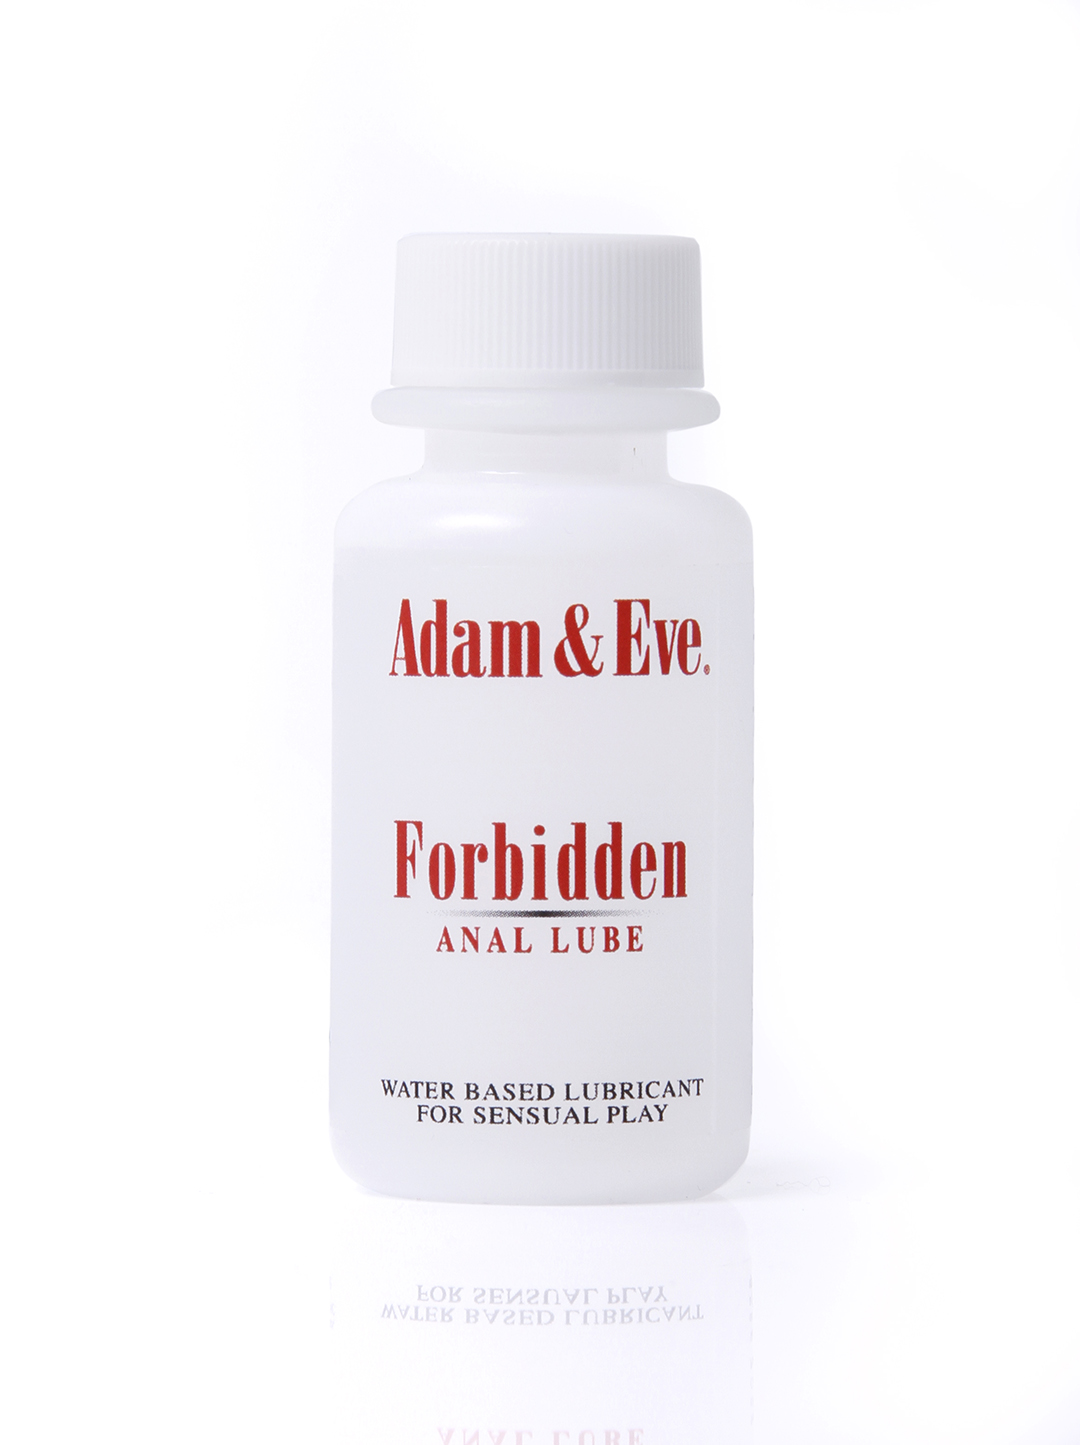 ADAM & EVE FORBIDDEN ANAL LUBE 1OZ